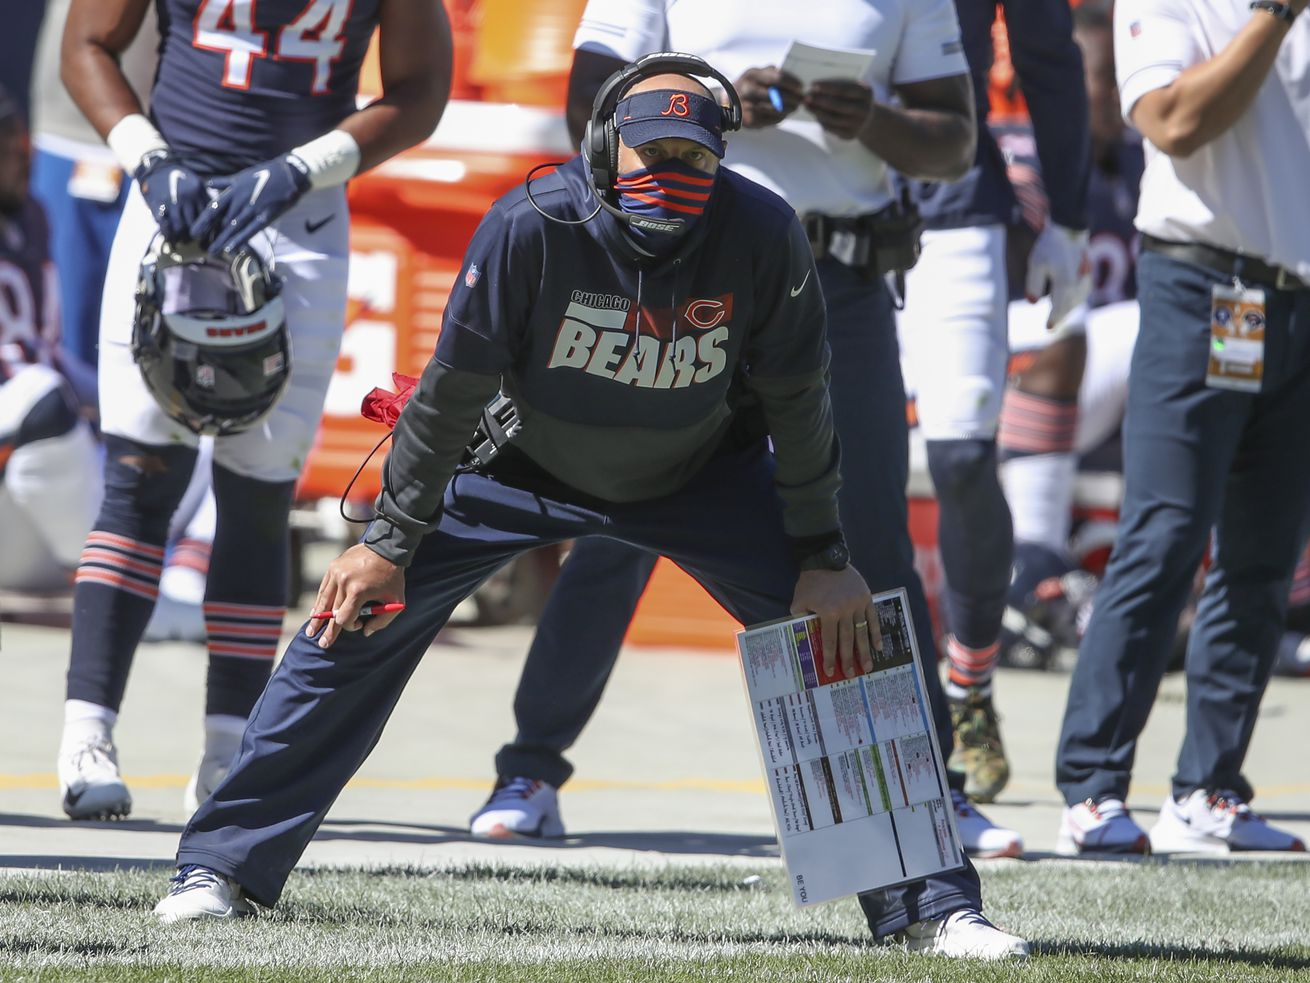 Bears' Matt Nagy, Falcons' Dan Quinn both struggling with their specialties